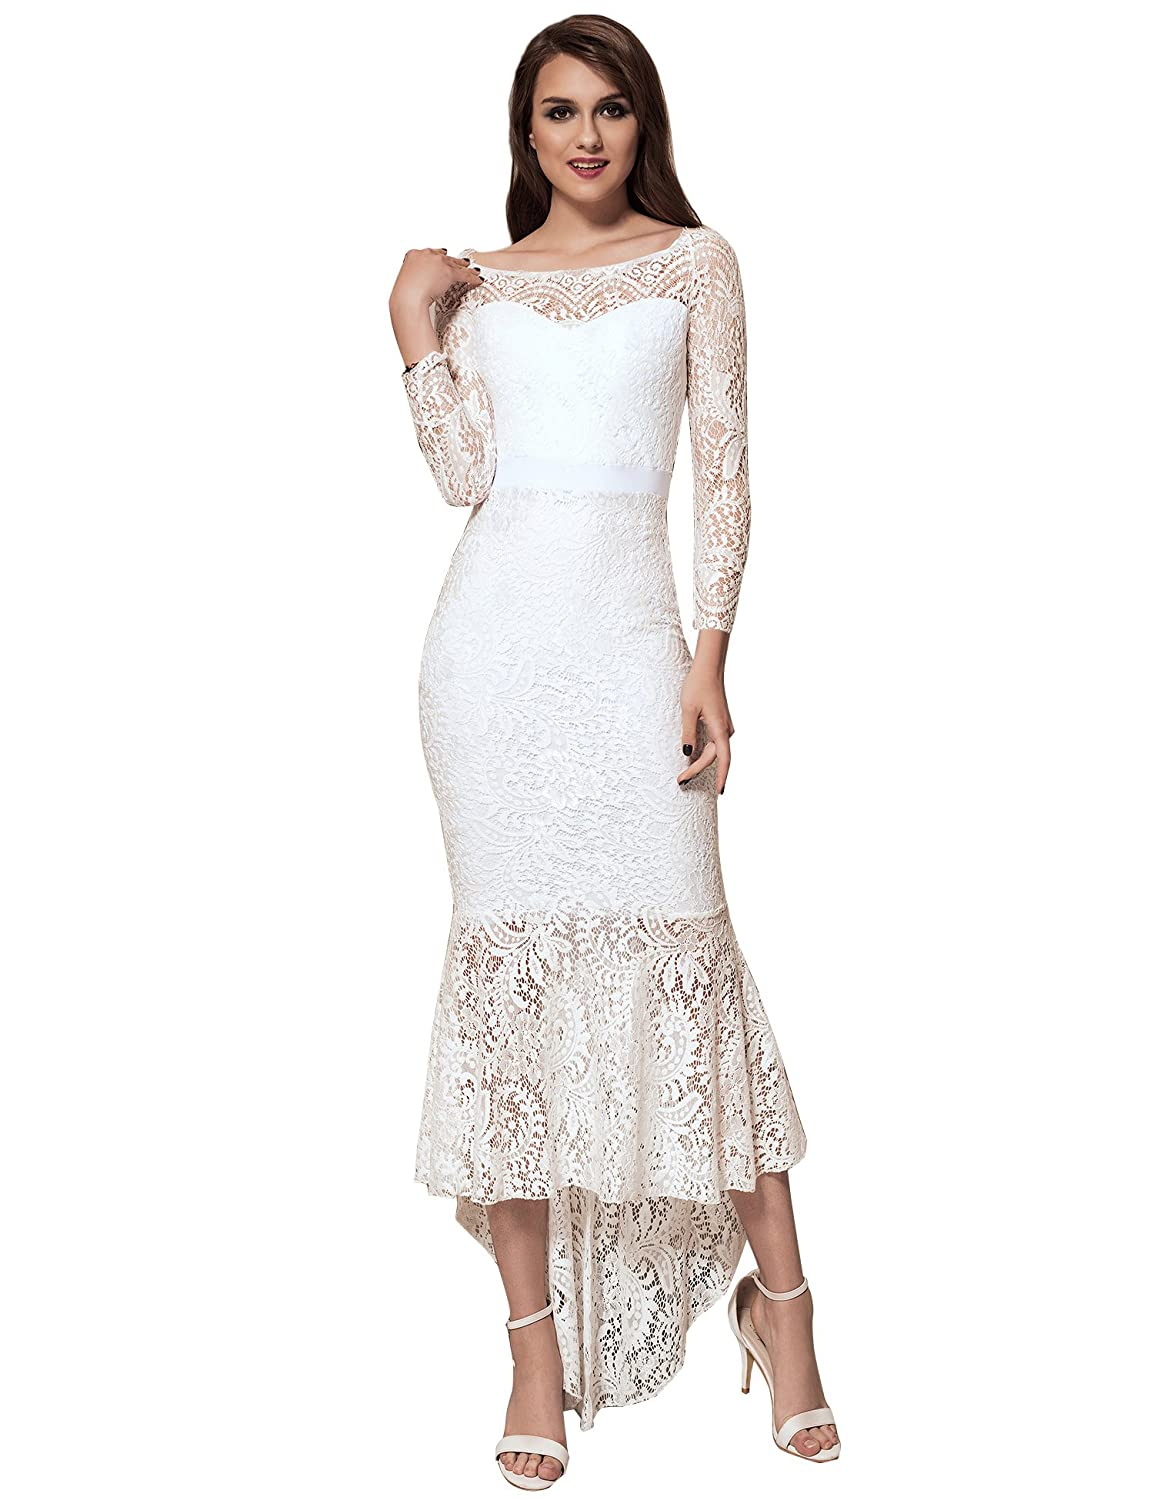 ohyeah Women Solid Formal Lace Maxi Dress Long Sleeve Off Shoulder Elegant Party Gown Mermaid Dress V1063